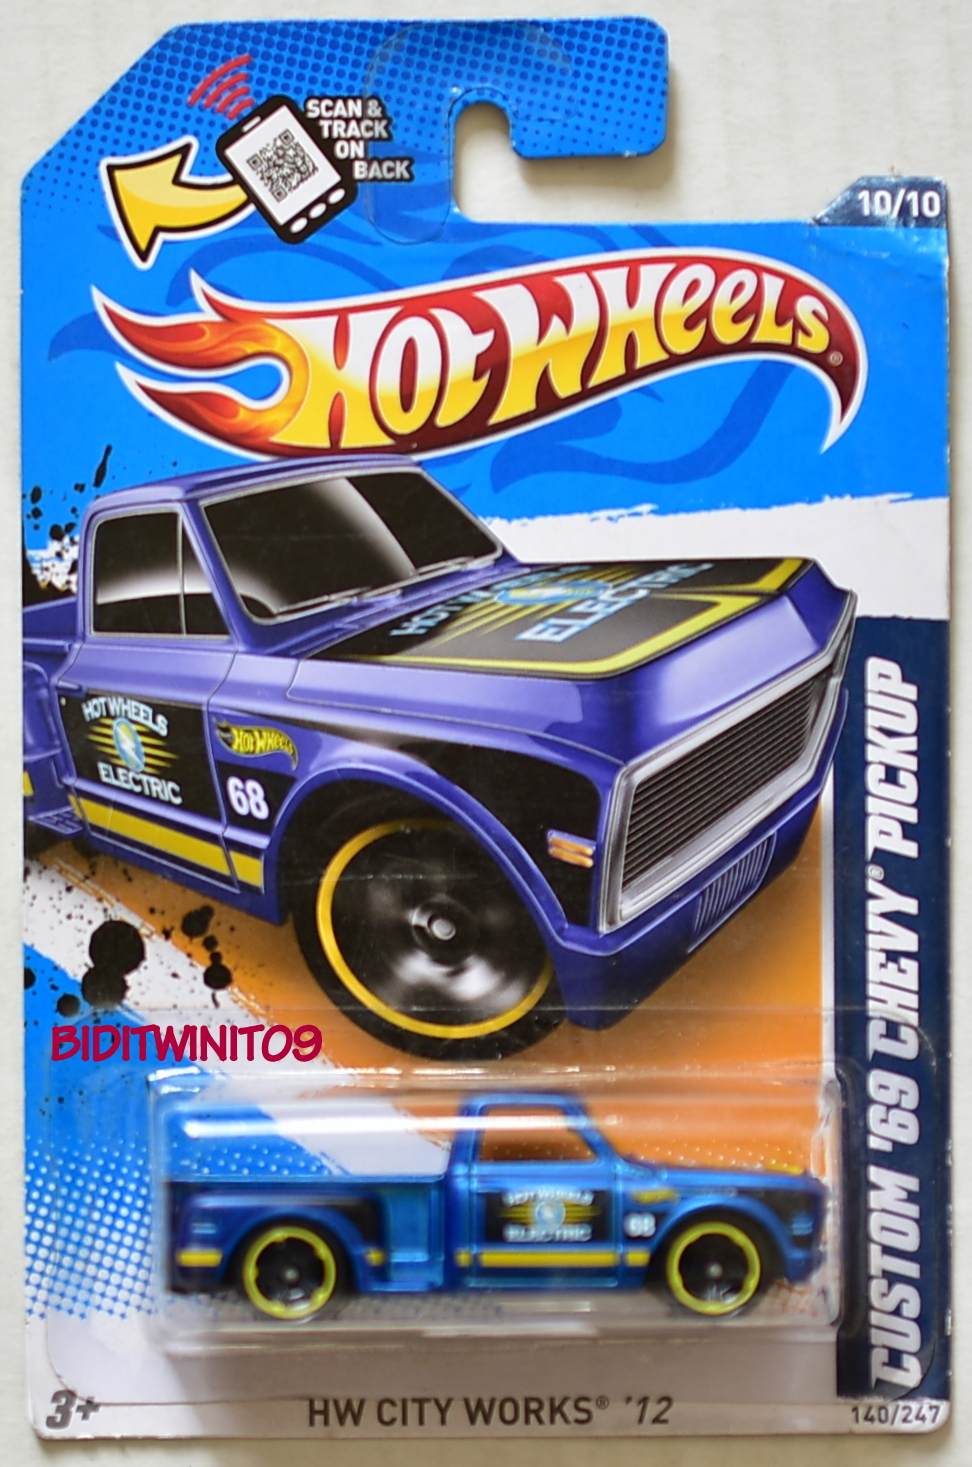 HOT WHEELS 2012 HW CITY WORKS CUSTOM '69 CHEVY PICKUP BLUE E+